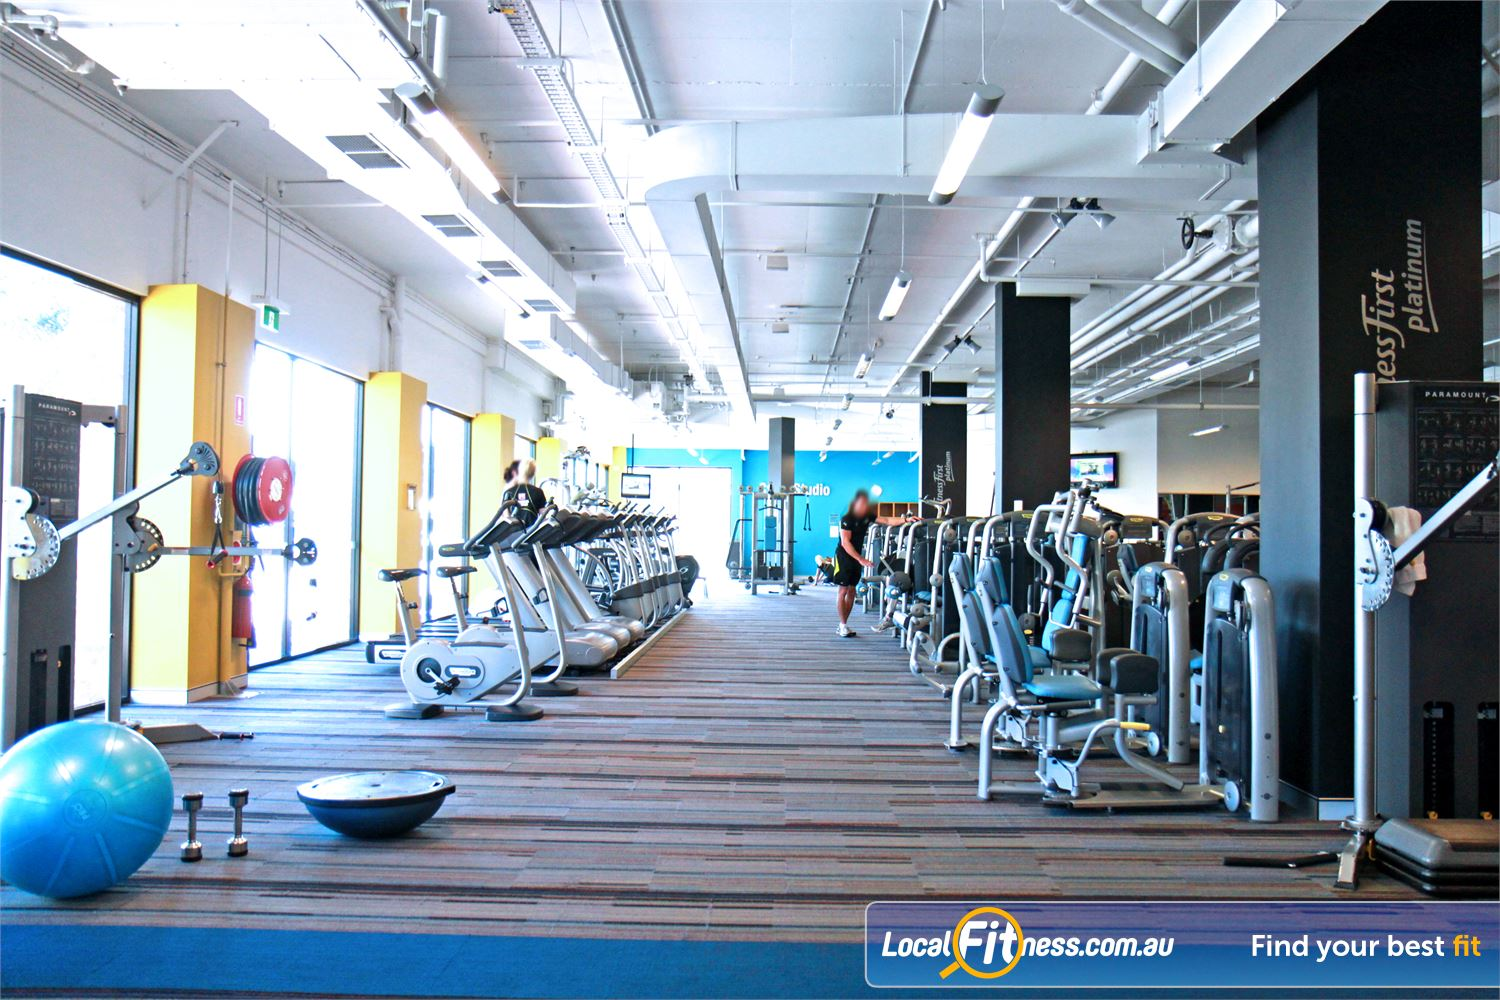 Goodlife Health Clubs Near West Leederville Our Subiaco gym features state of the art equipment from Technogym.